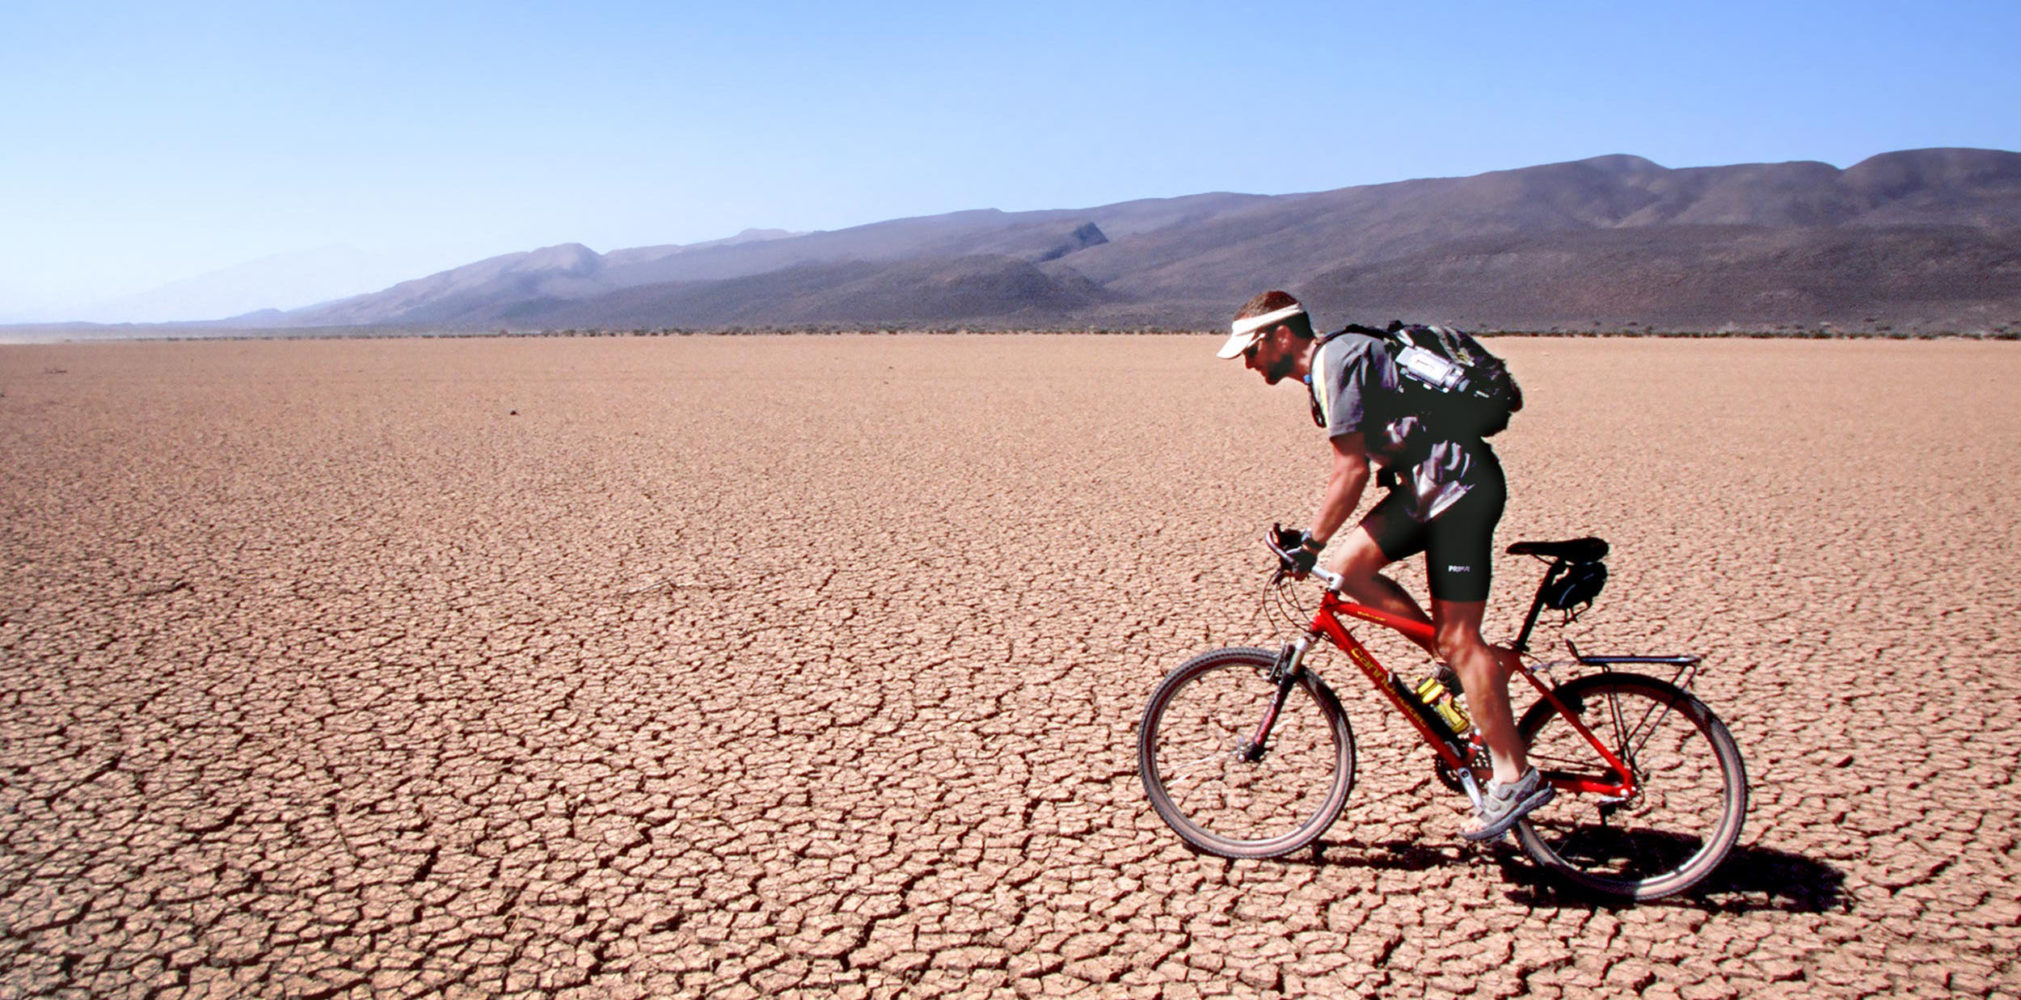 Pedal Power: Adventurer Jason Lewis